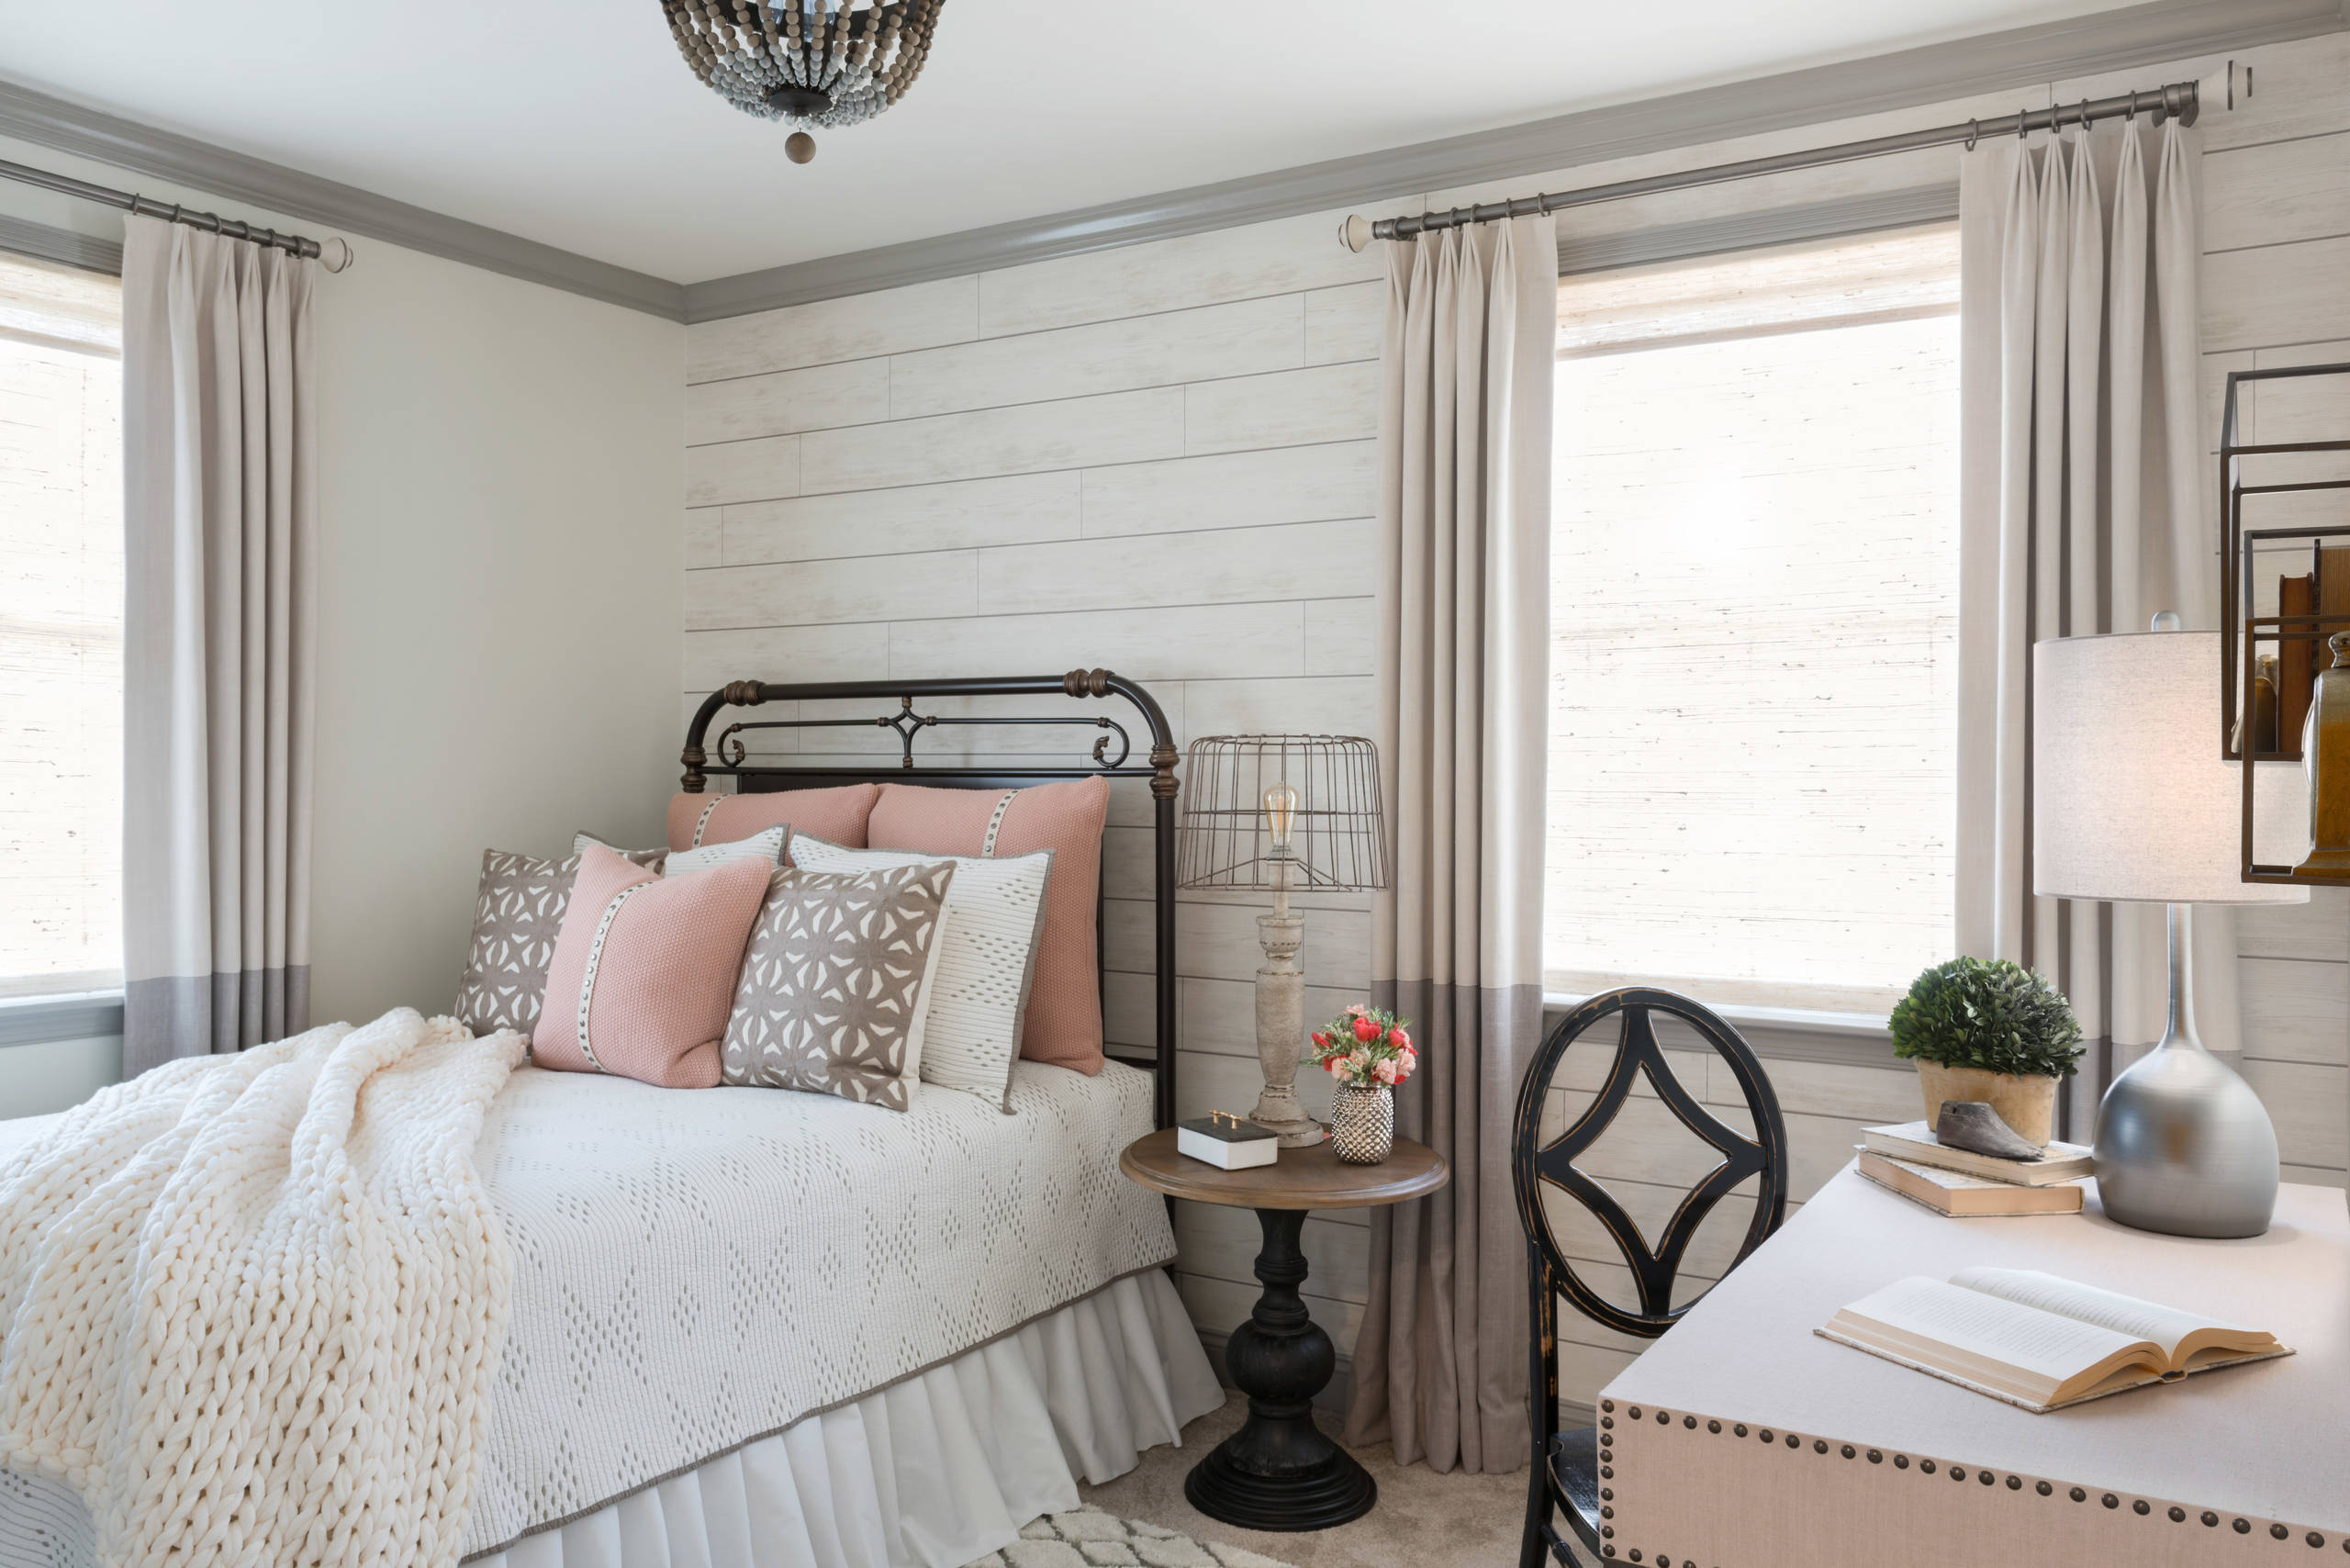 75 Beautiful Farmhouse Guest Bedroom Pictures Ideas February 2021 Houzz